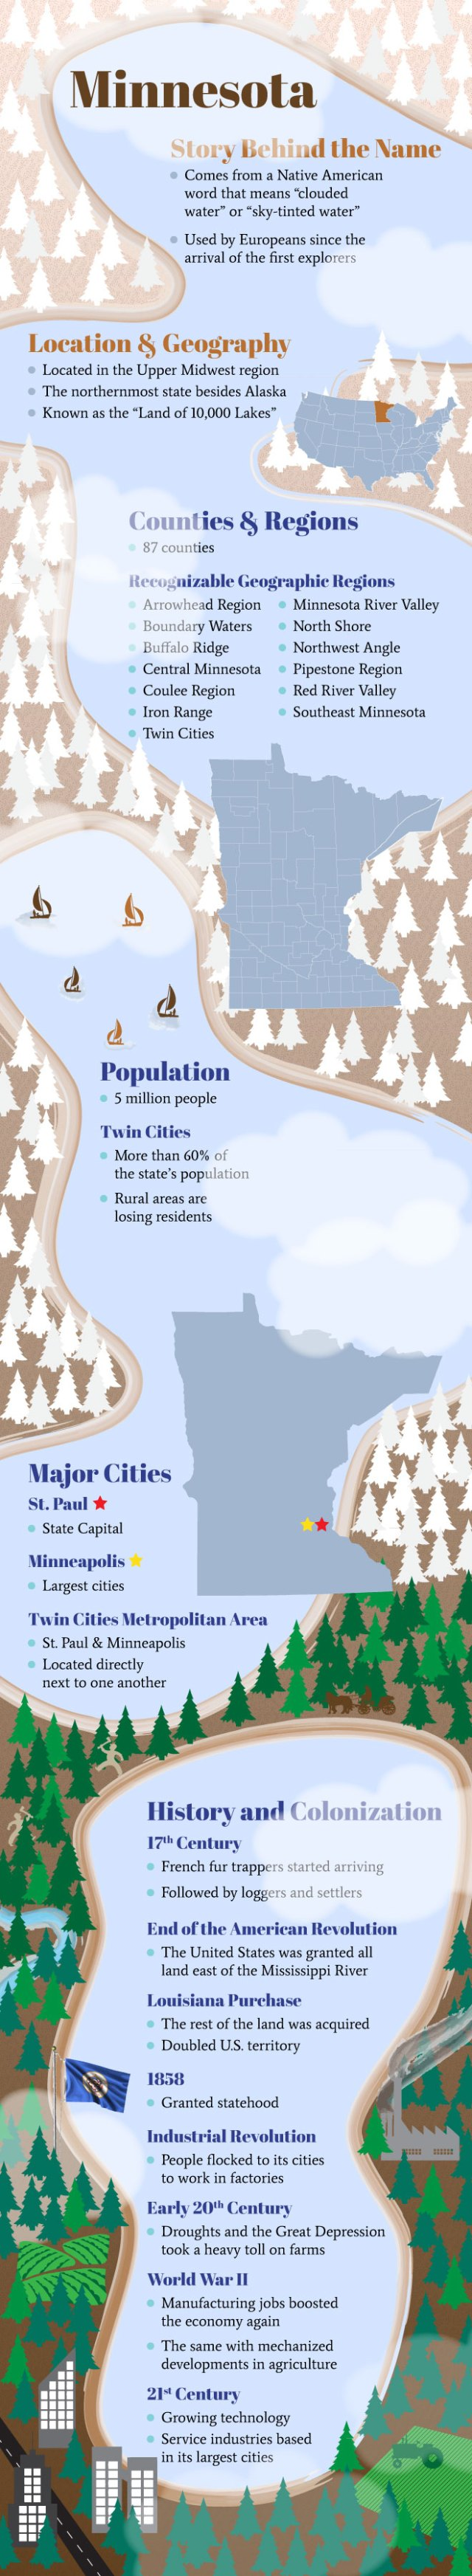 MN Infographic